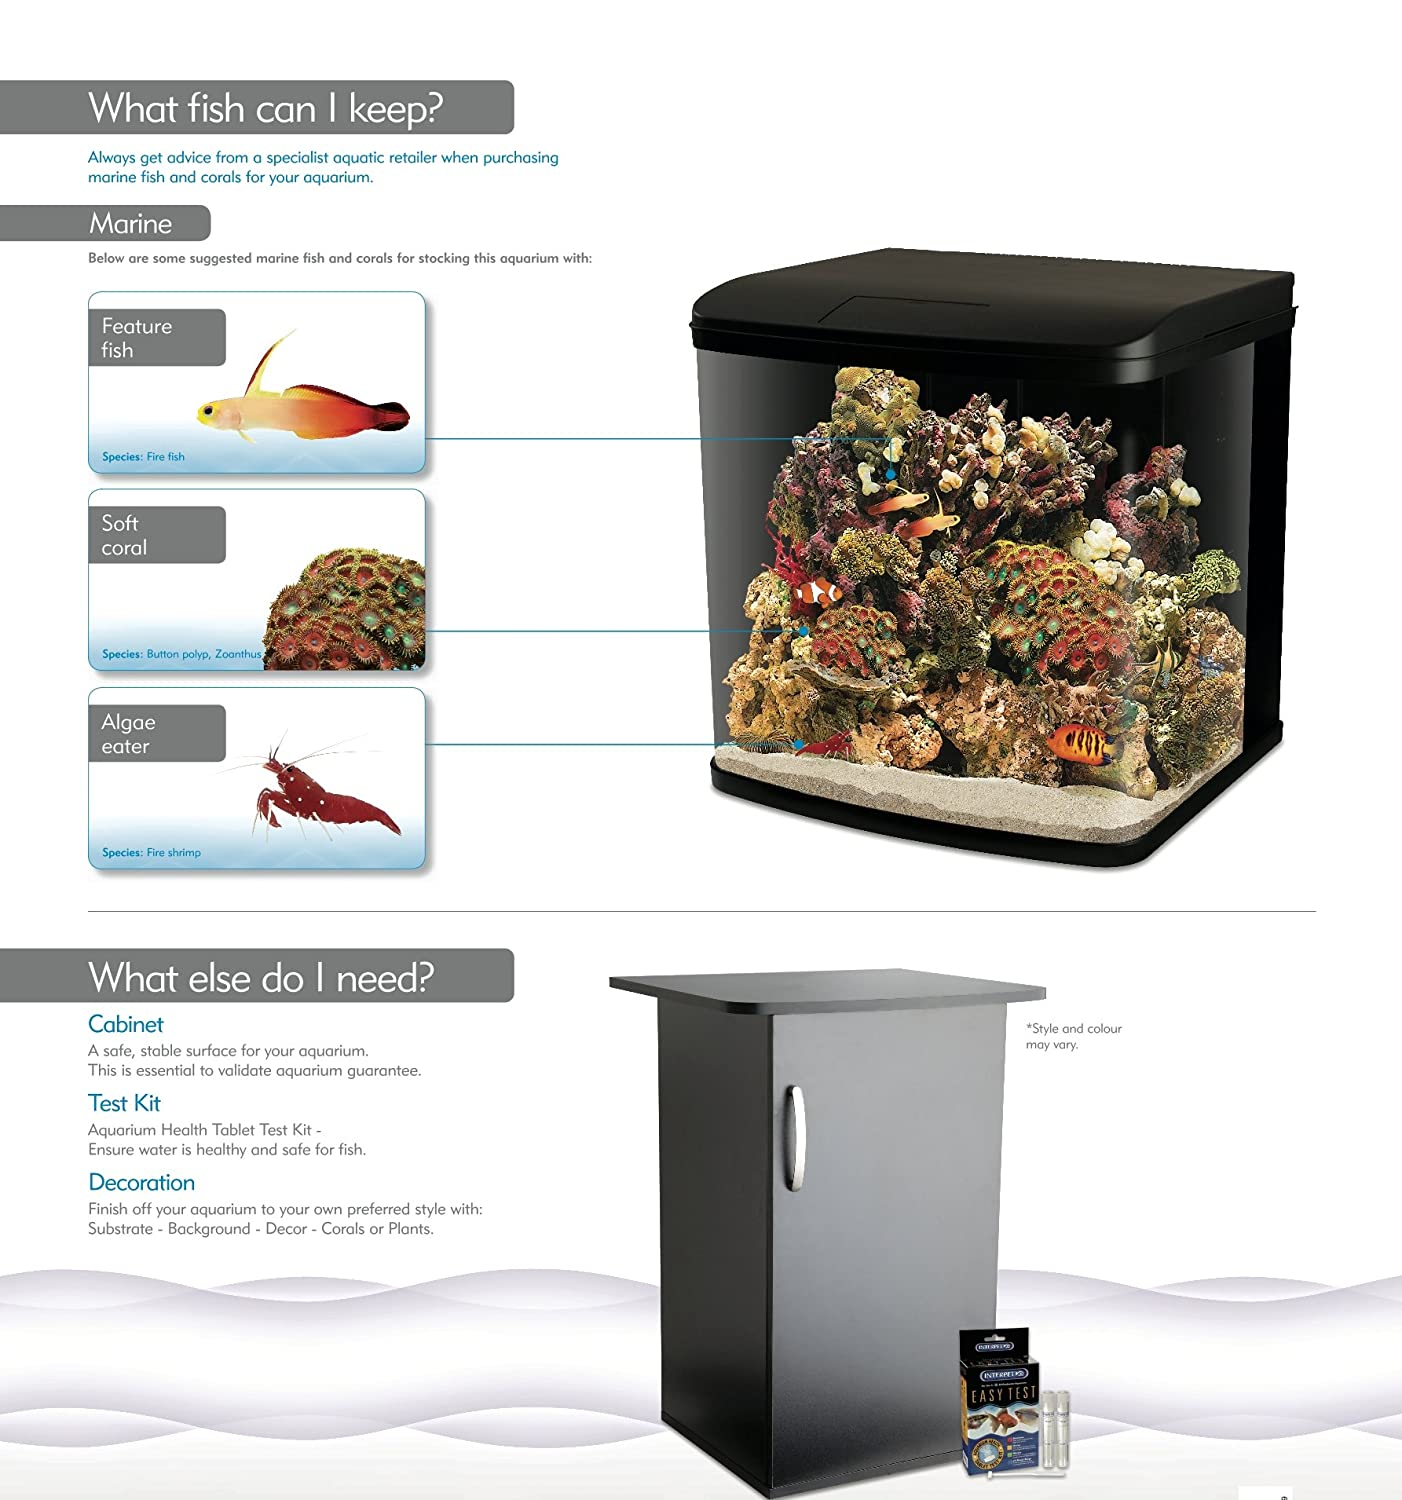 Freshwater aquarium fish bottom dwellers - Interpet Led Lighting River Reef Glass Aquarium Fish Tank 94 Litre Amazon Co Uk Pet Supplies